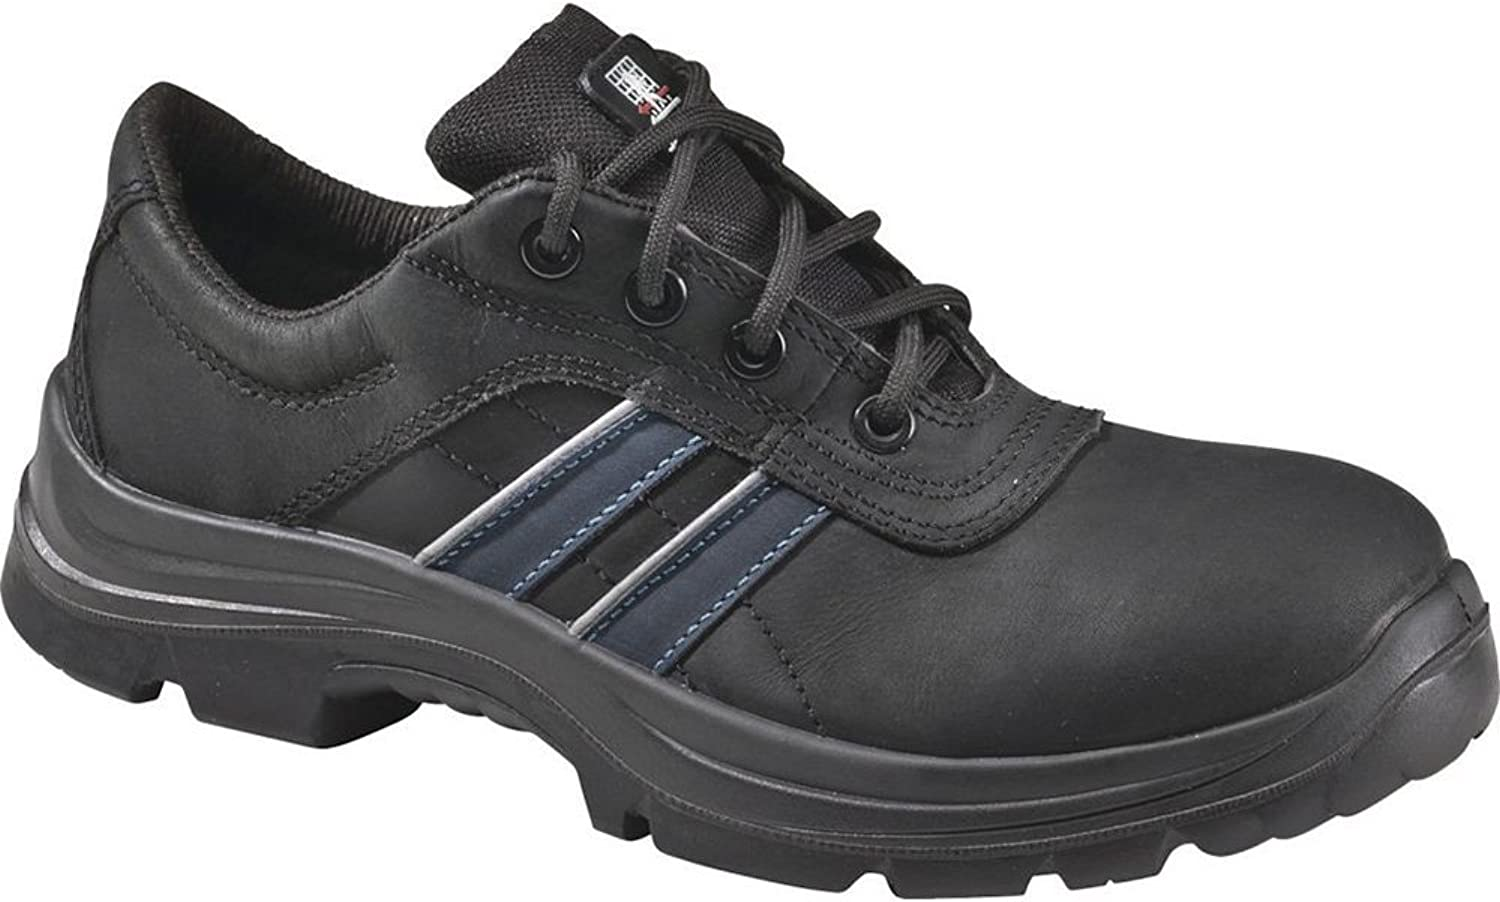 Lemaitre 91141 Size 41 2X-Large Width S3  Andy Low  Safety shoes